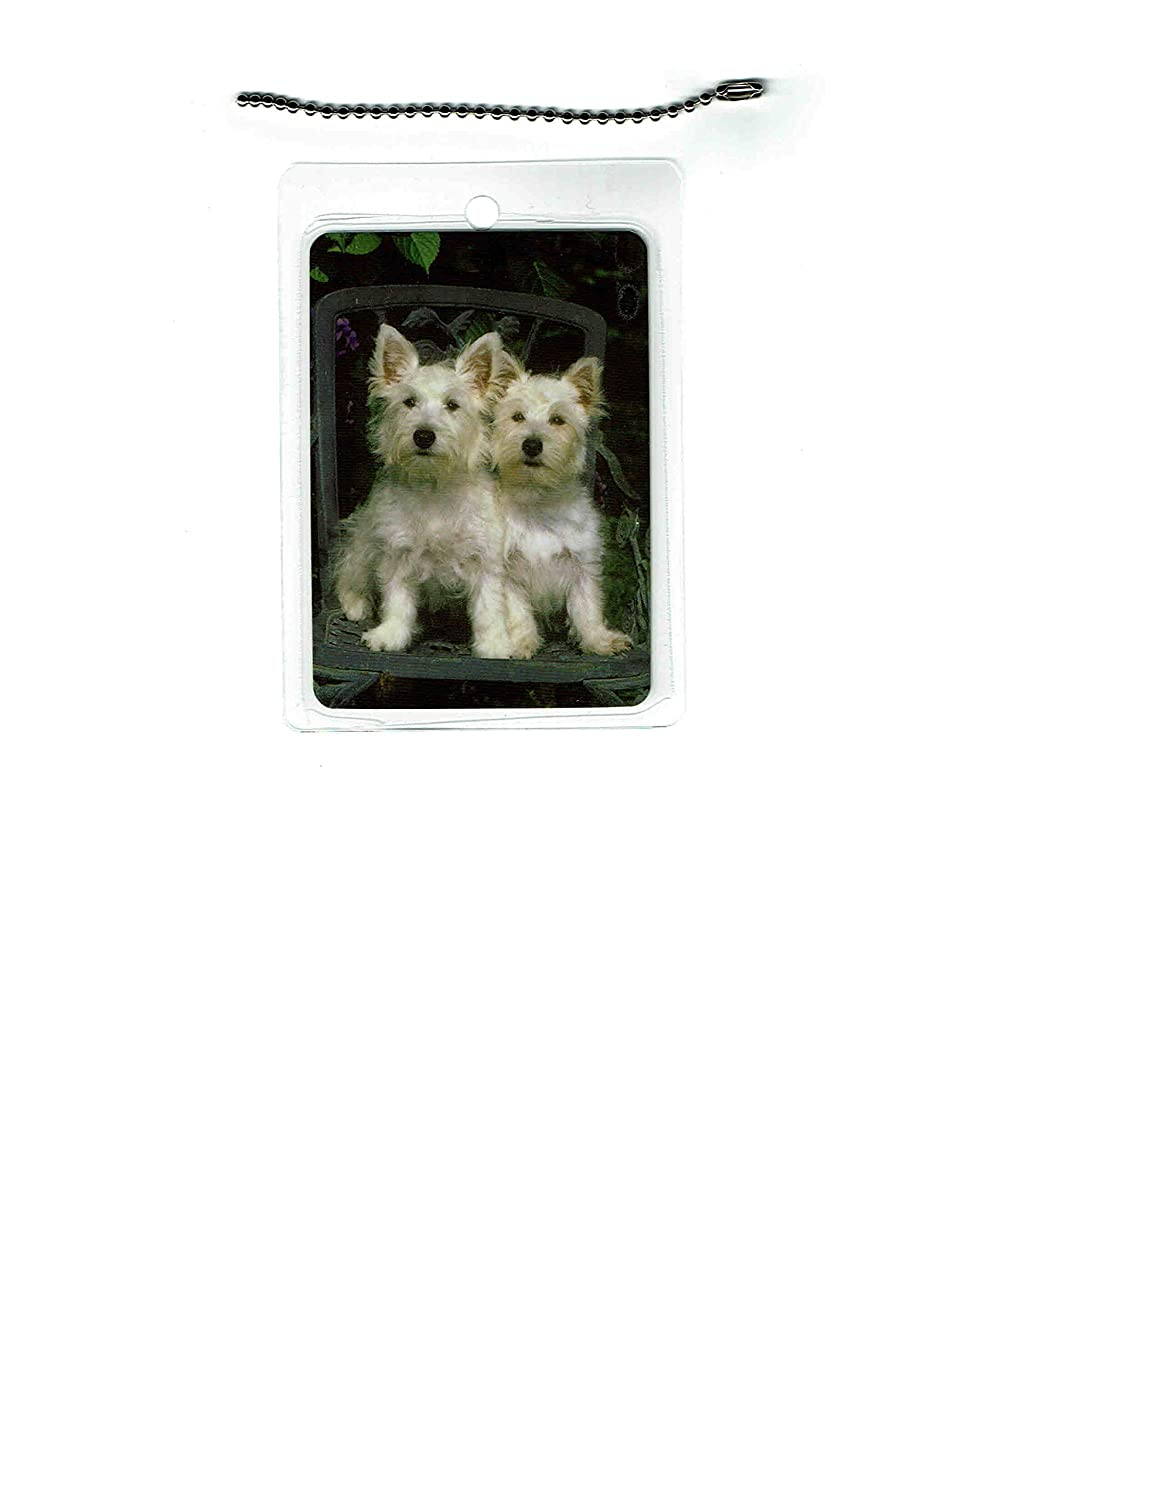 West Highland White Terrier Tag Dealing full price reduction Luggage 67% OFF of fixed price Dog